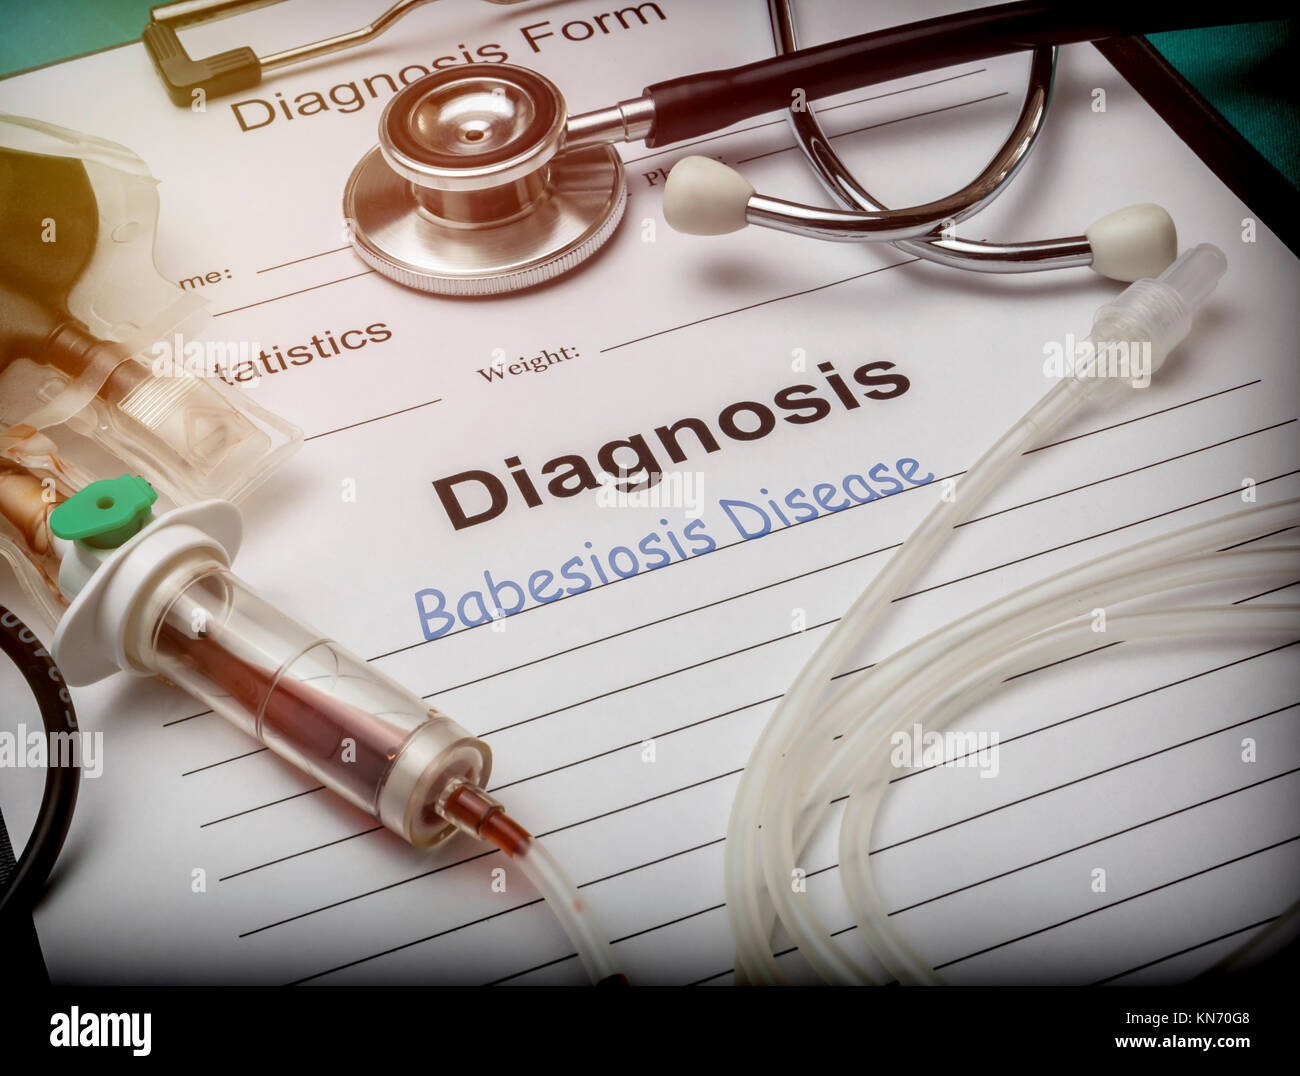 Diagnostic form, babesiosis disease, drip irrigation equipment with traces of blood in a hospital, conceptual image - Stock Image